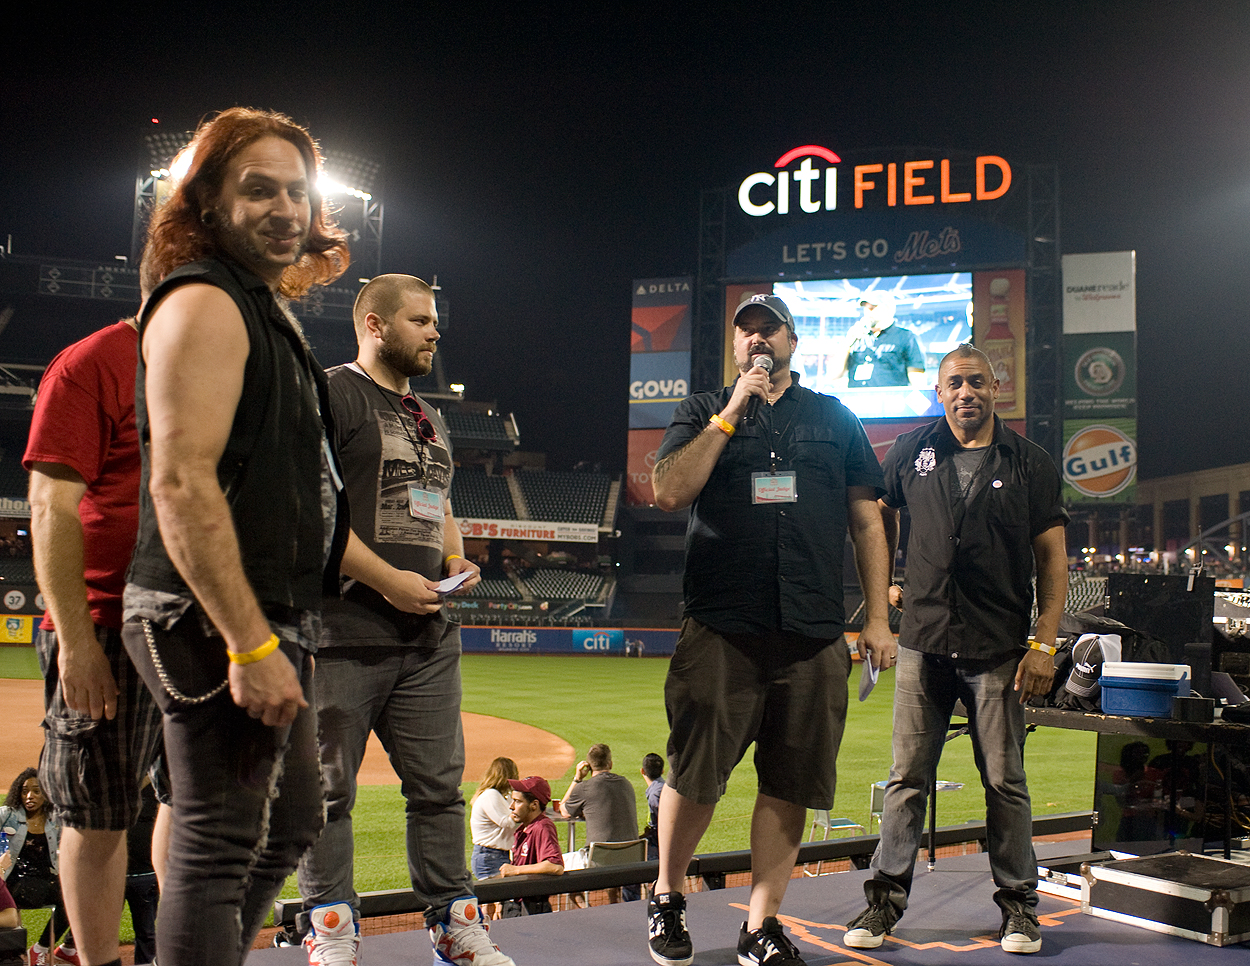 bacon_and_beer_classic_nyc_citi_field_2014_burger_conquest_winners_photos_information_54